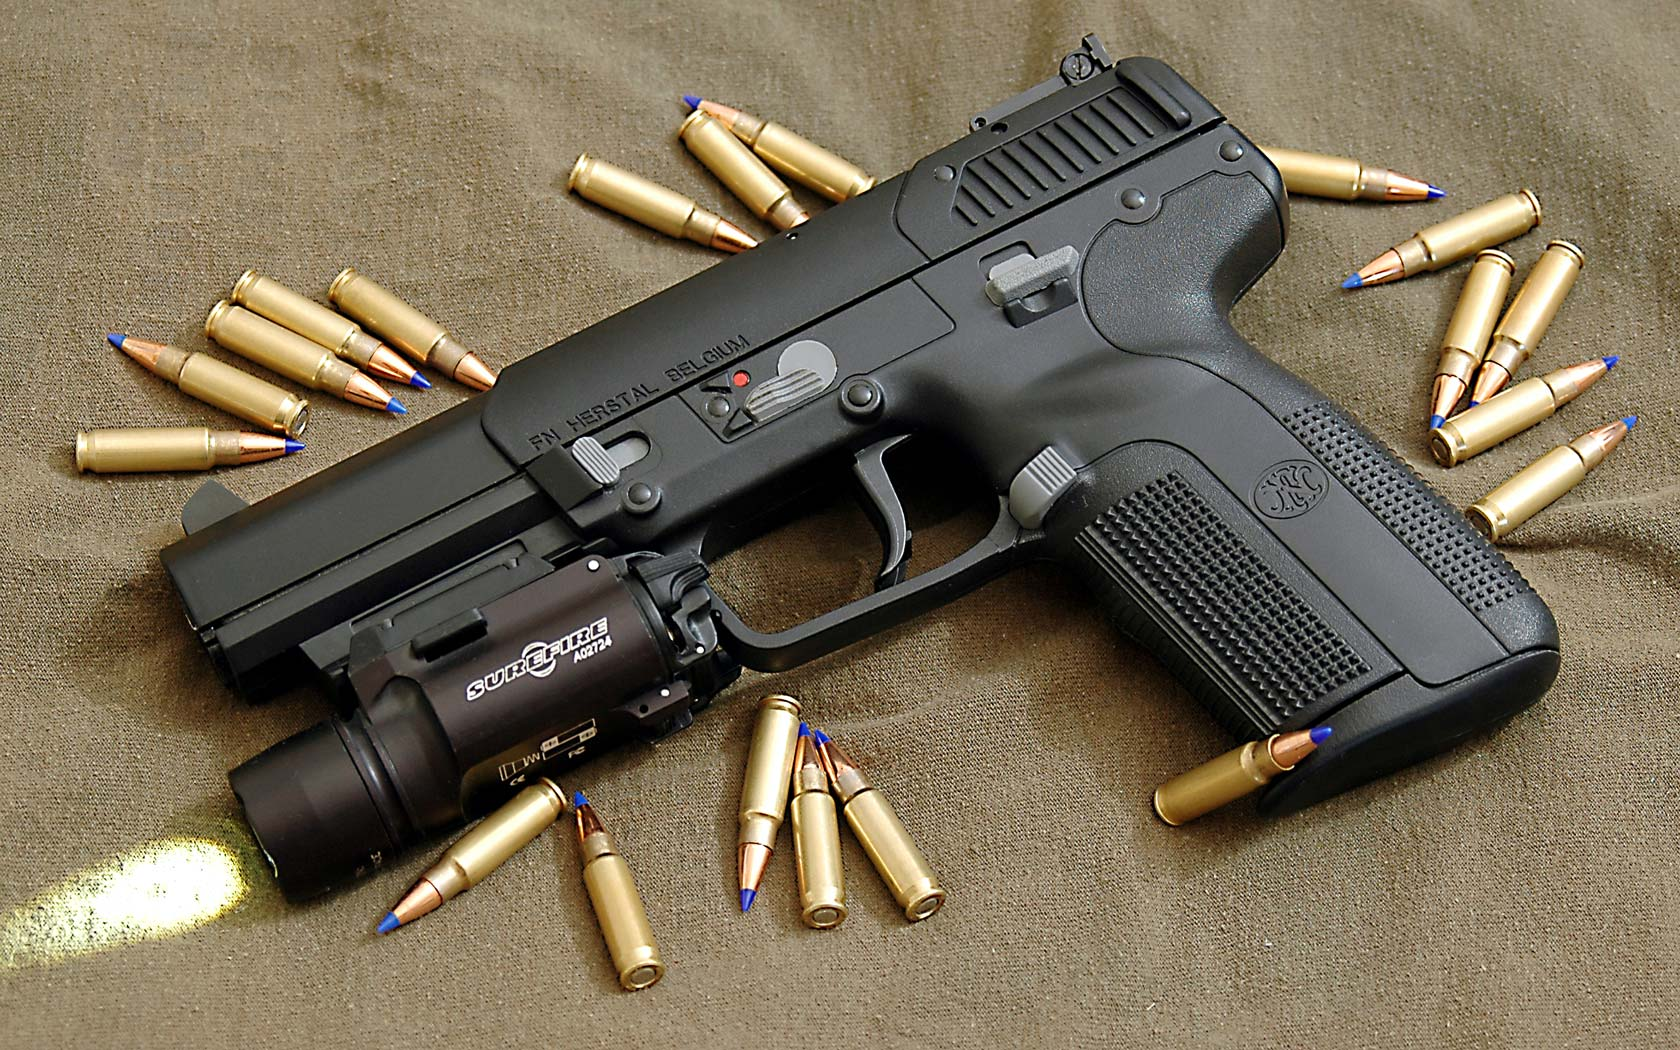 Fn five seven 5,7 x 28 (Imperdible)